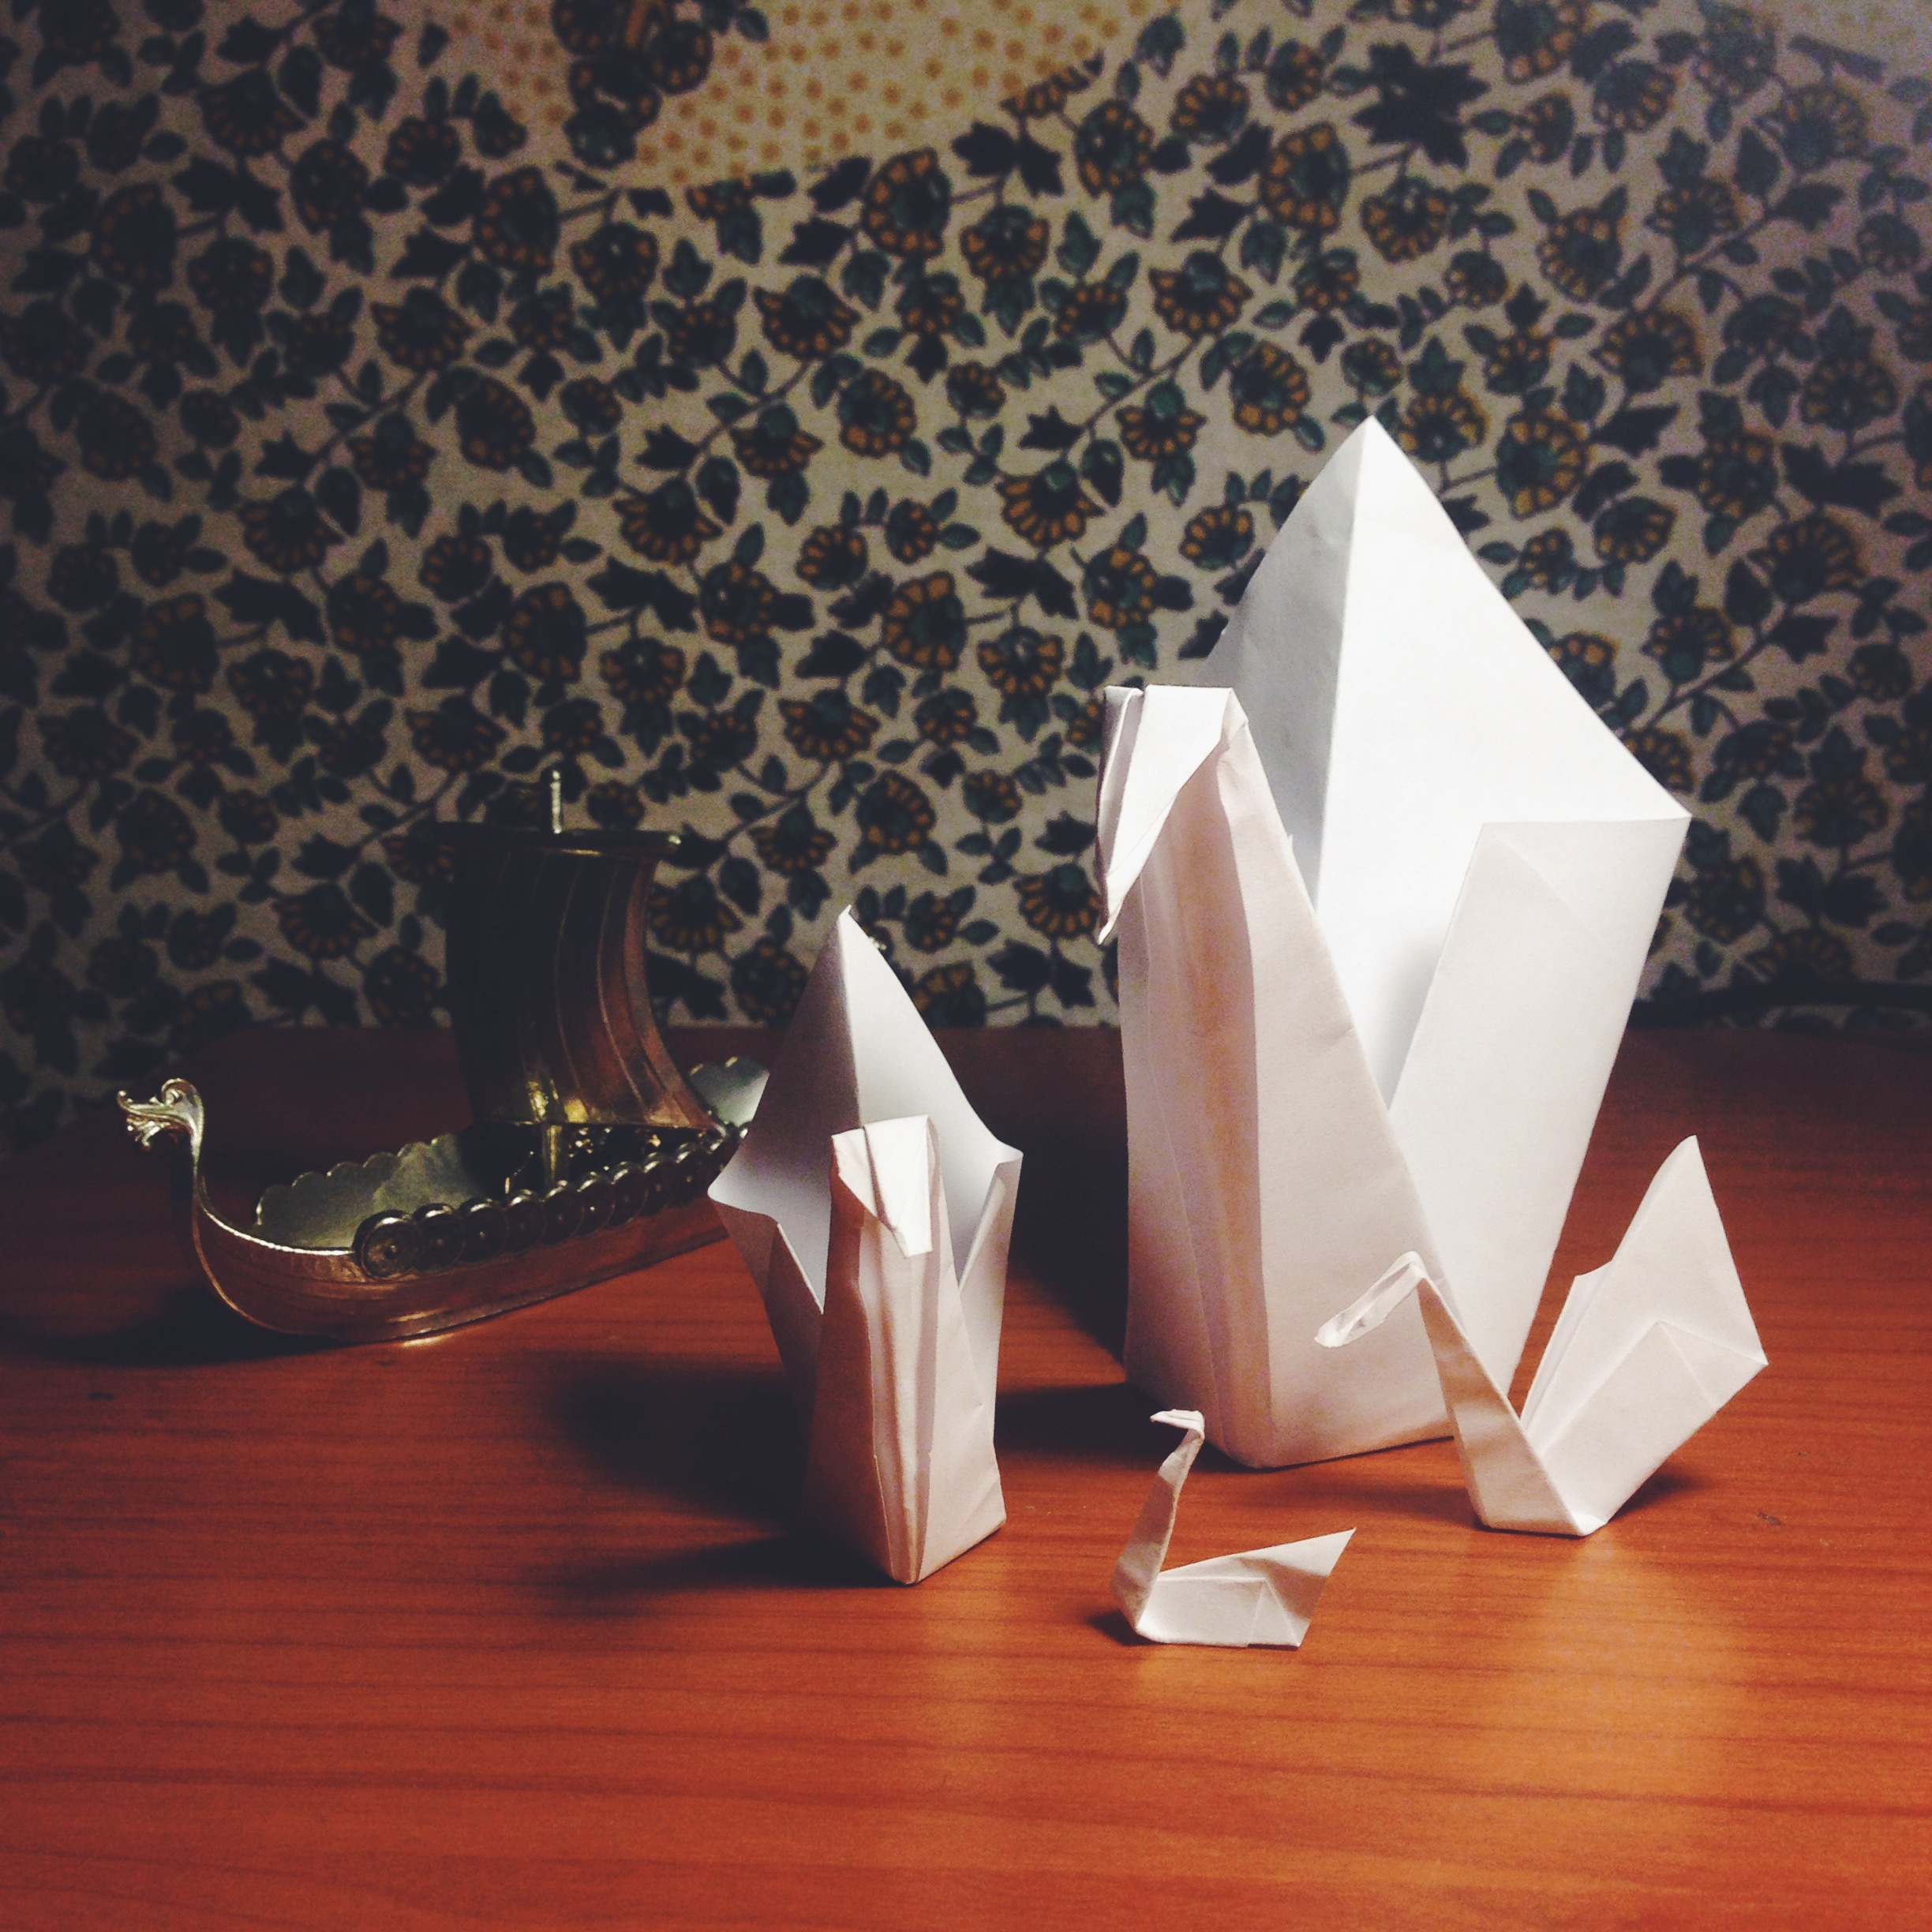 NewMayDays Day 4: Hungover Crafts